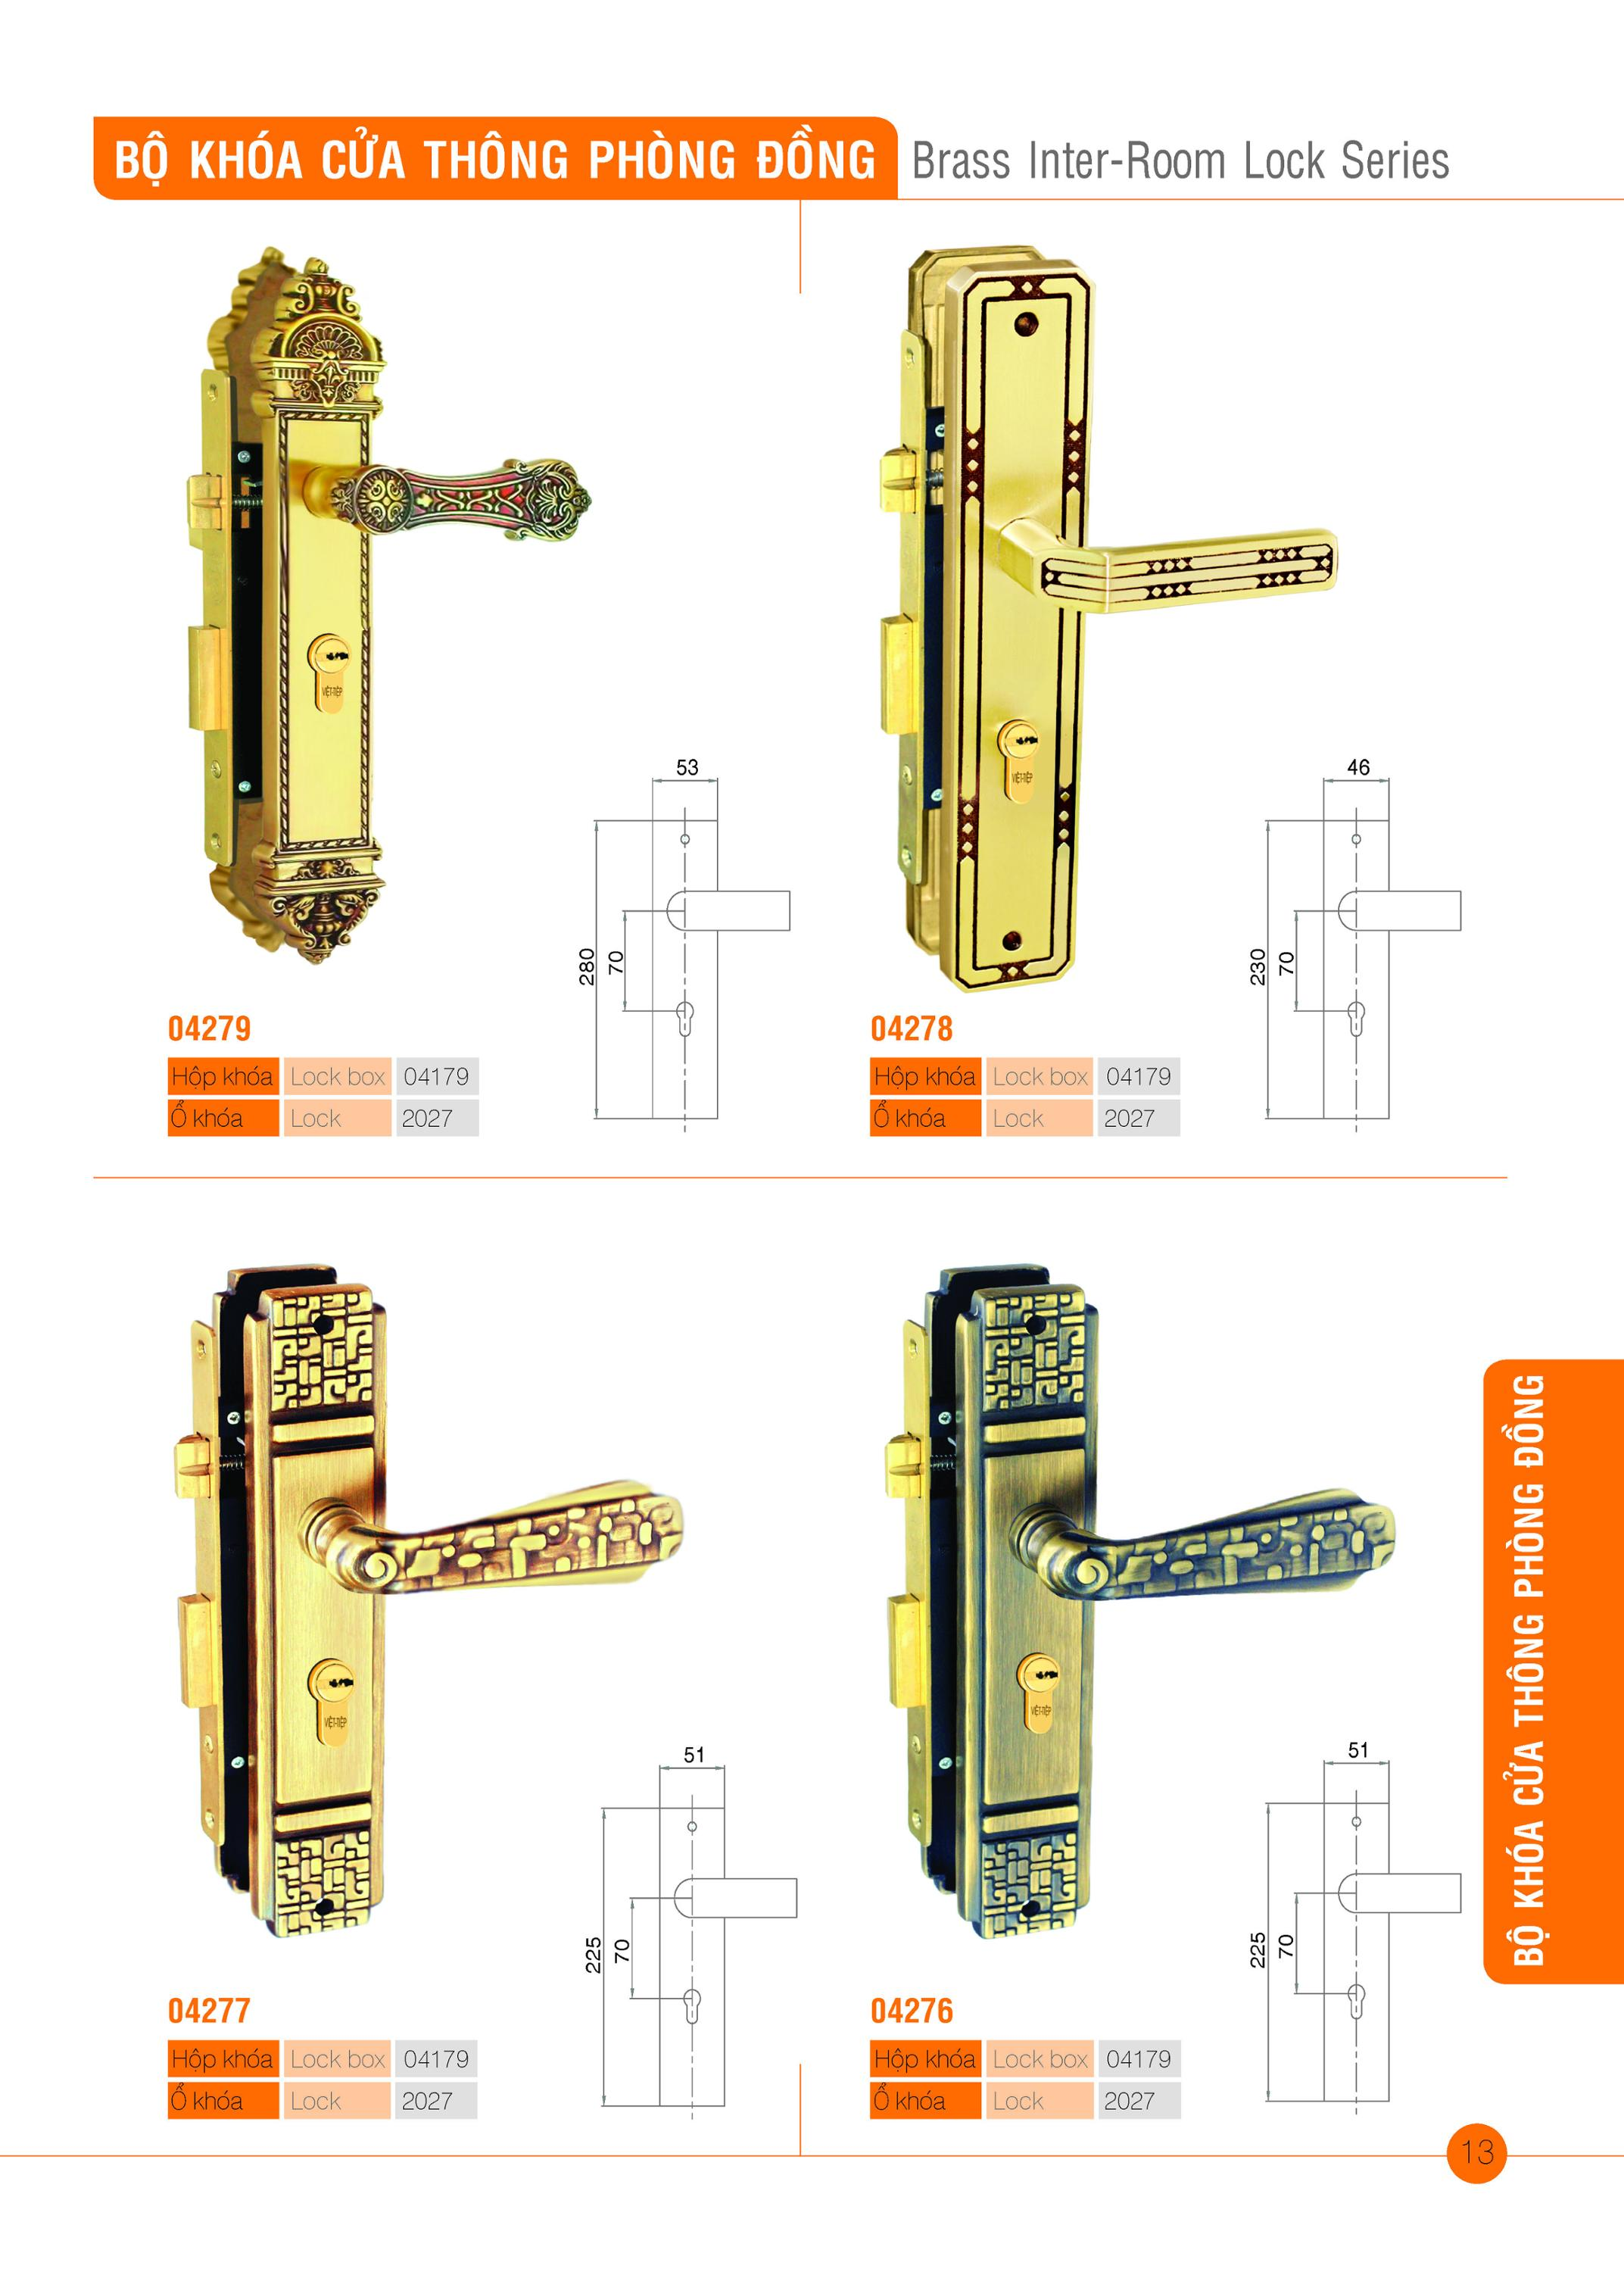 Brass Inter-room lock series